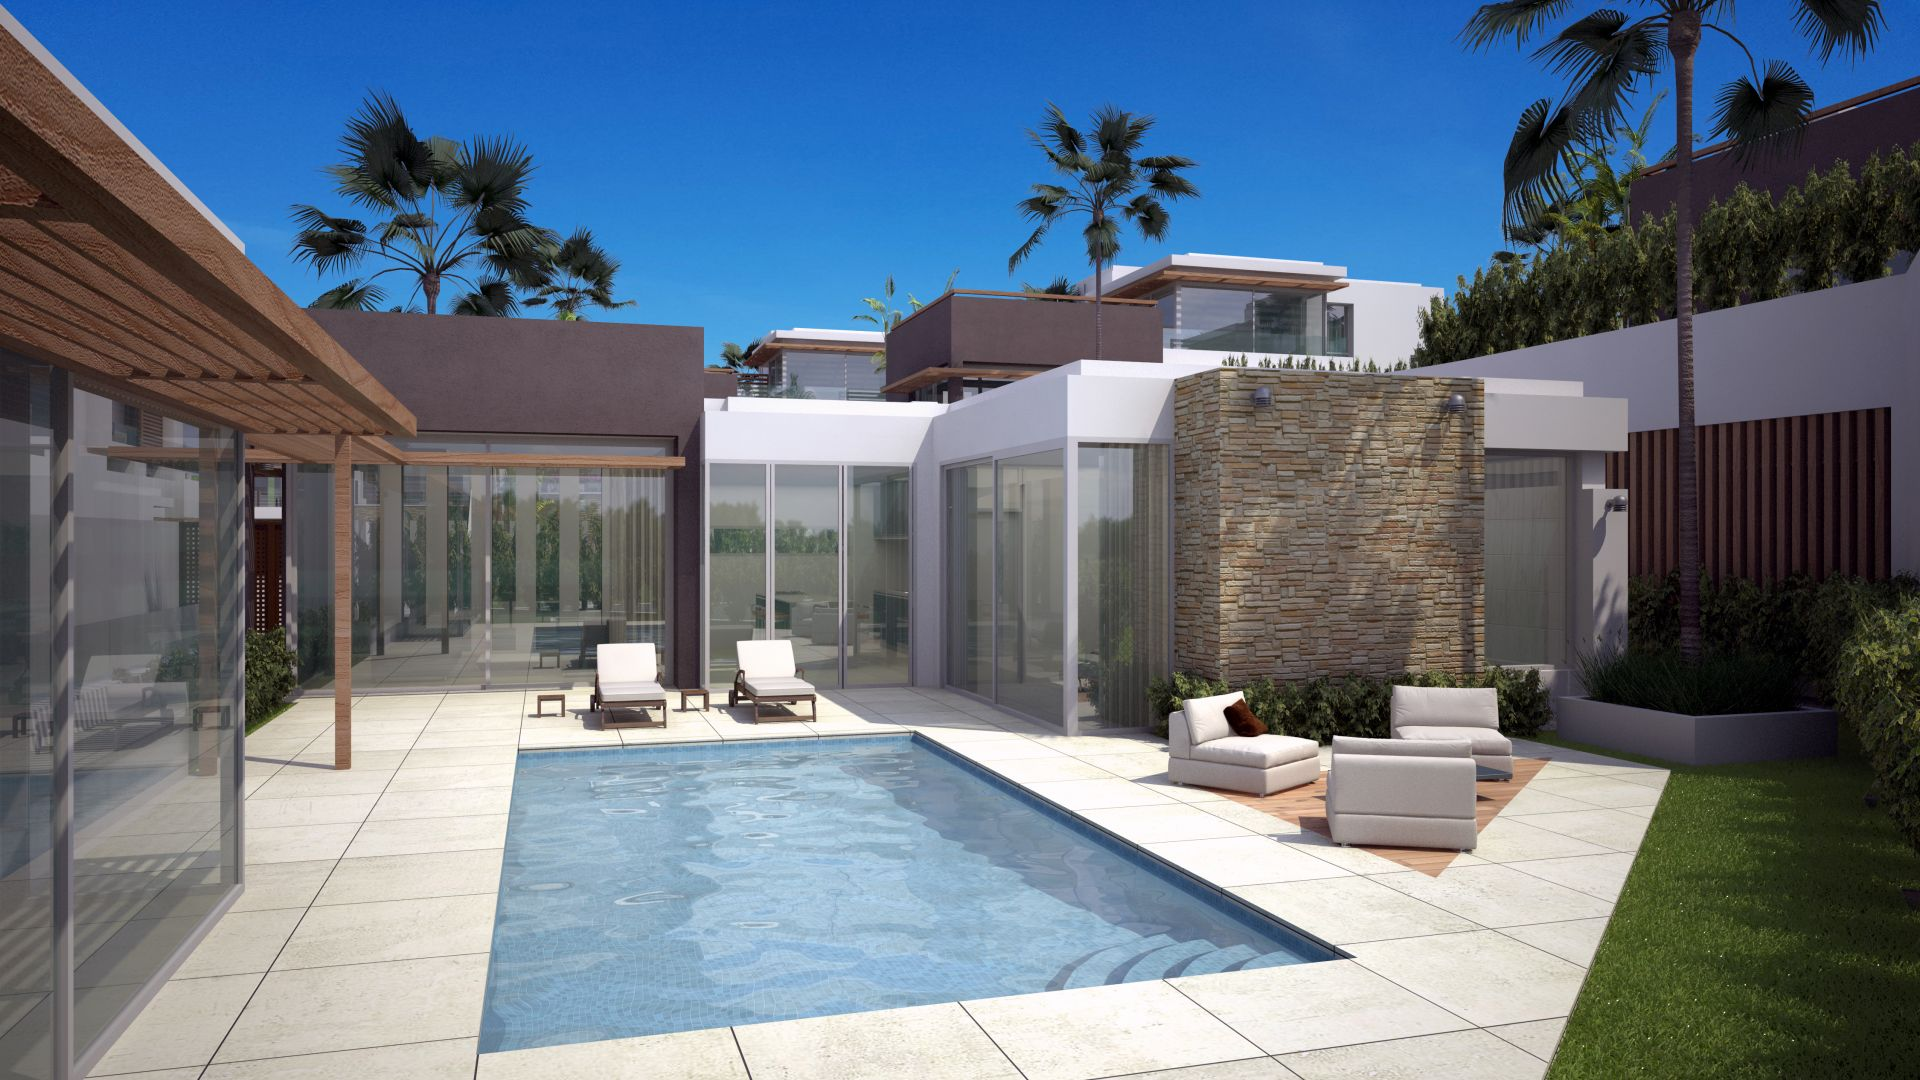 Twelve exclusive design villas within a gated community walking distance to the beach